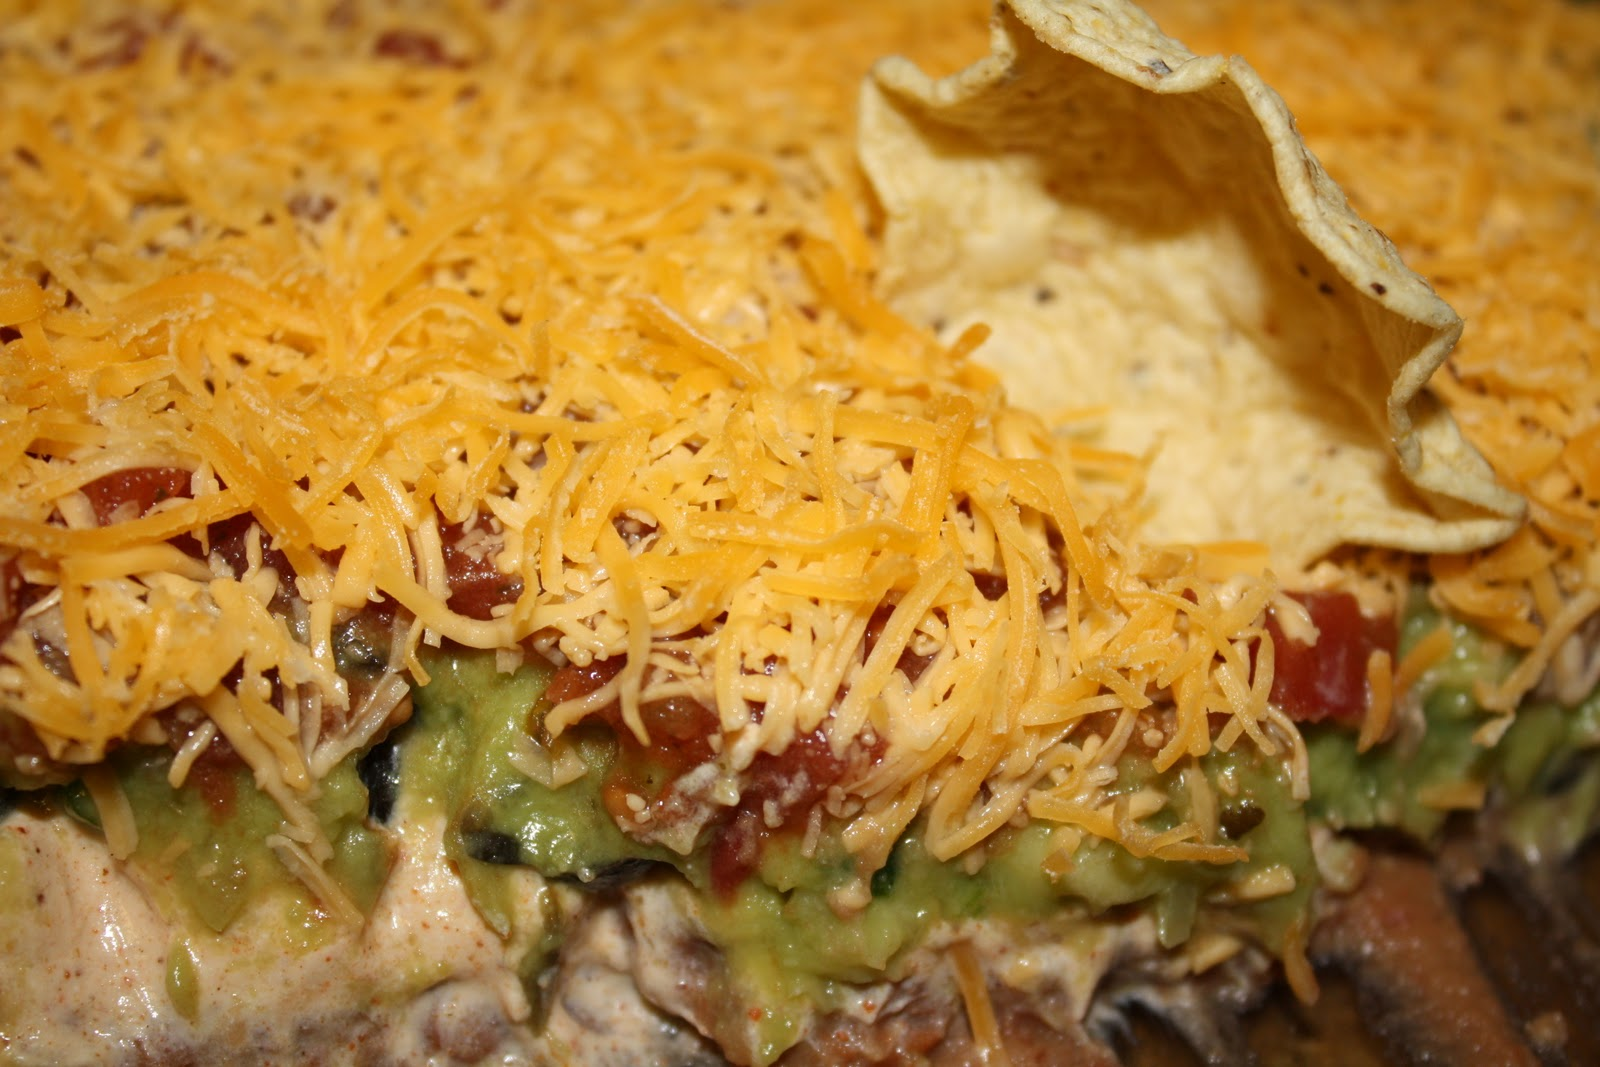 Creamy Refried Bean Dip